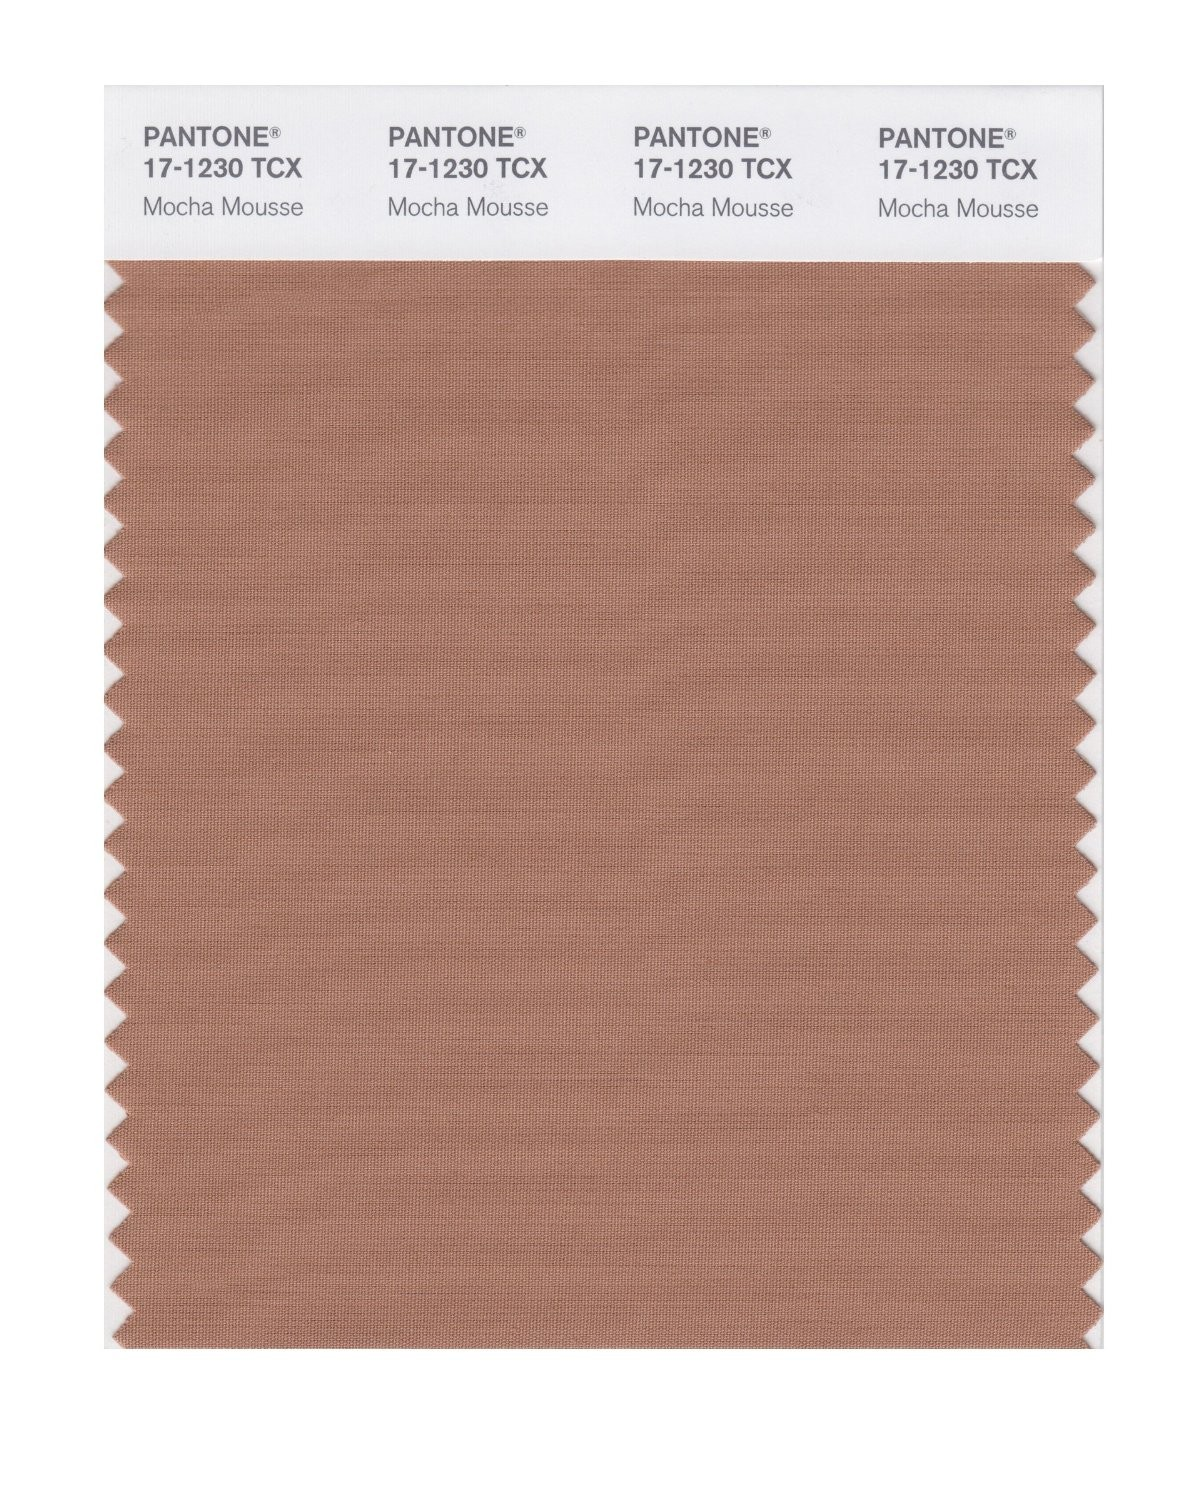 Pantone 17-1230 TCX Swatch Card Mocha Mousse